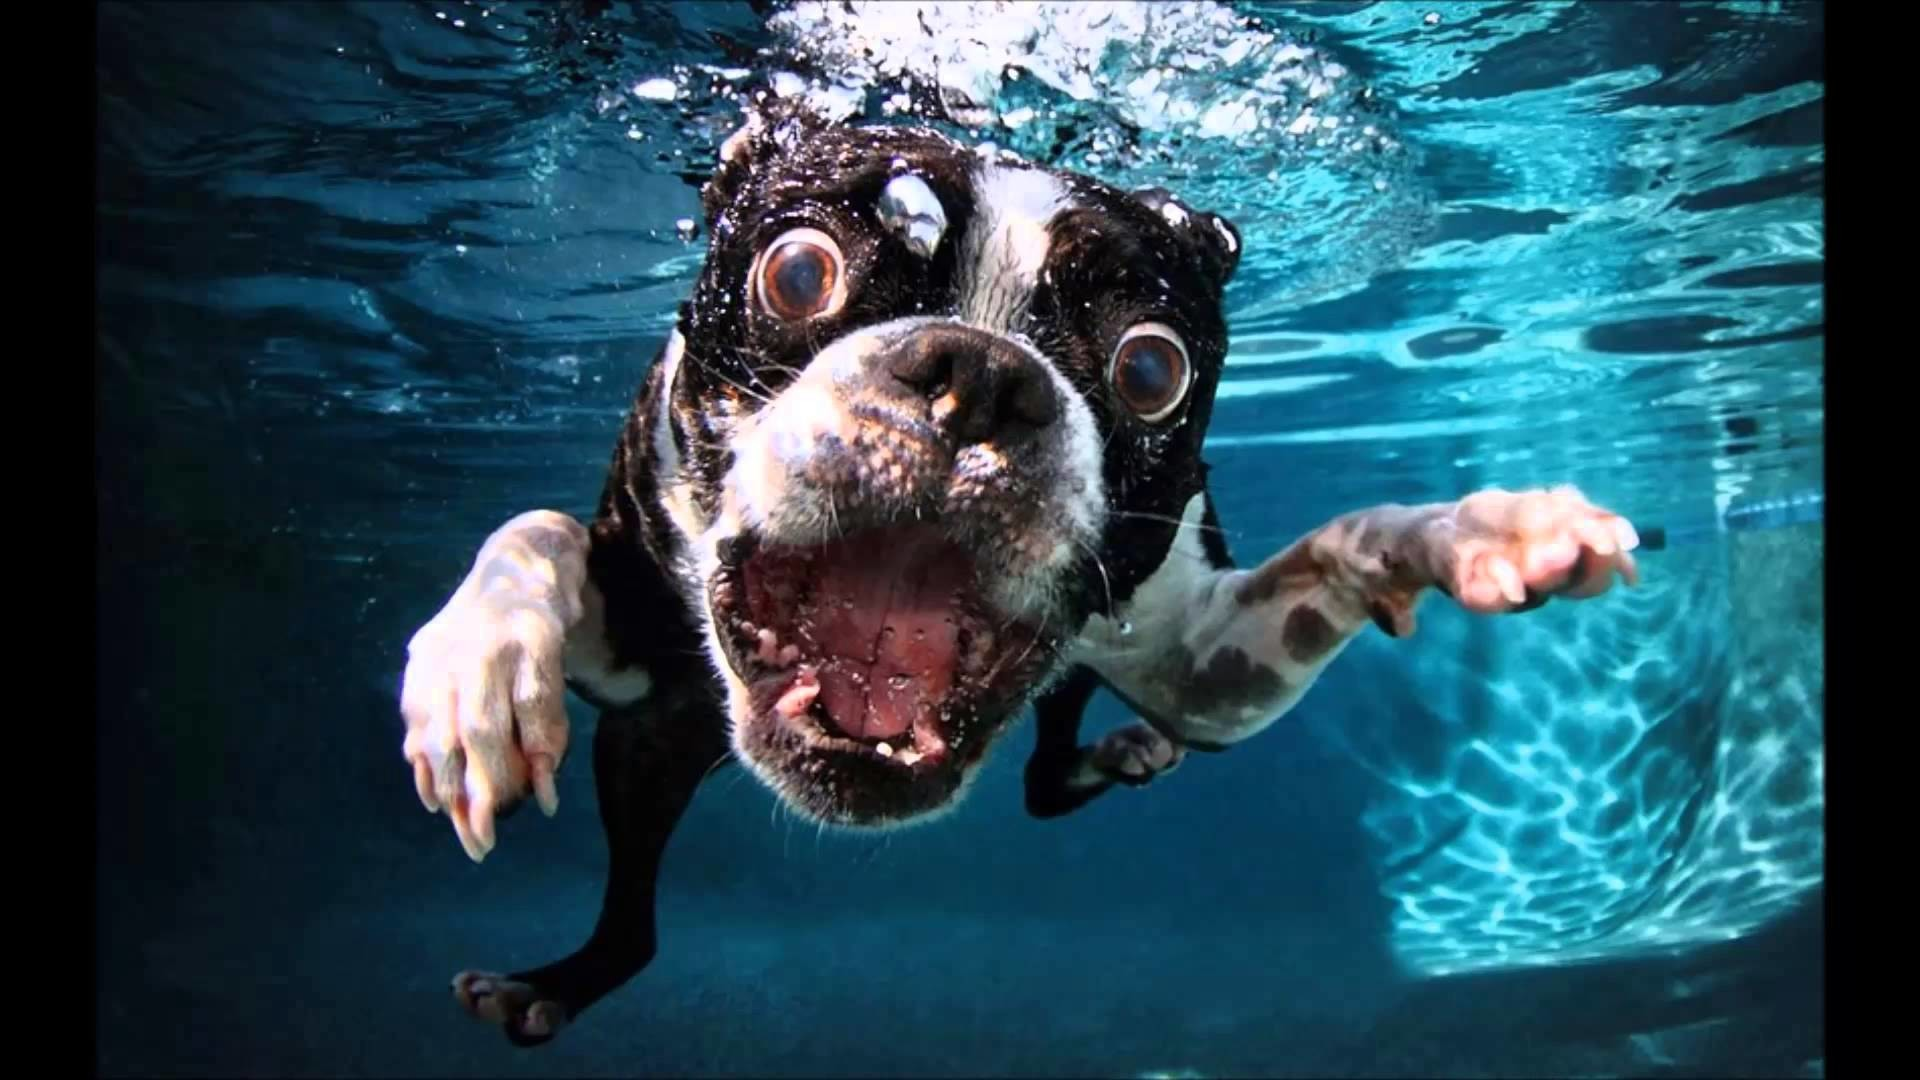 1920x1080 Underwater Dogs Drowning pool